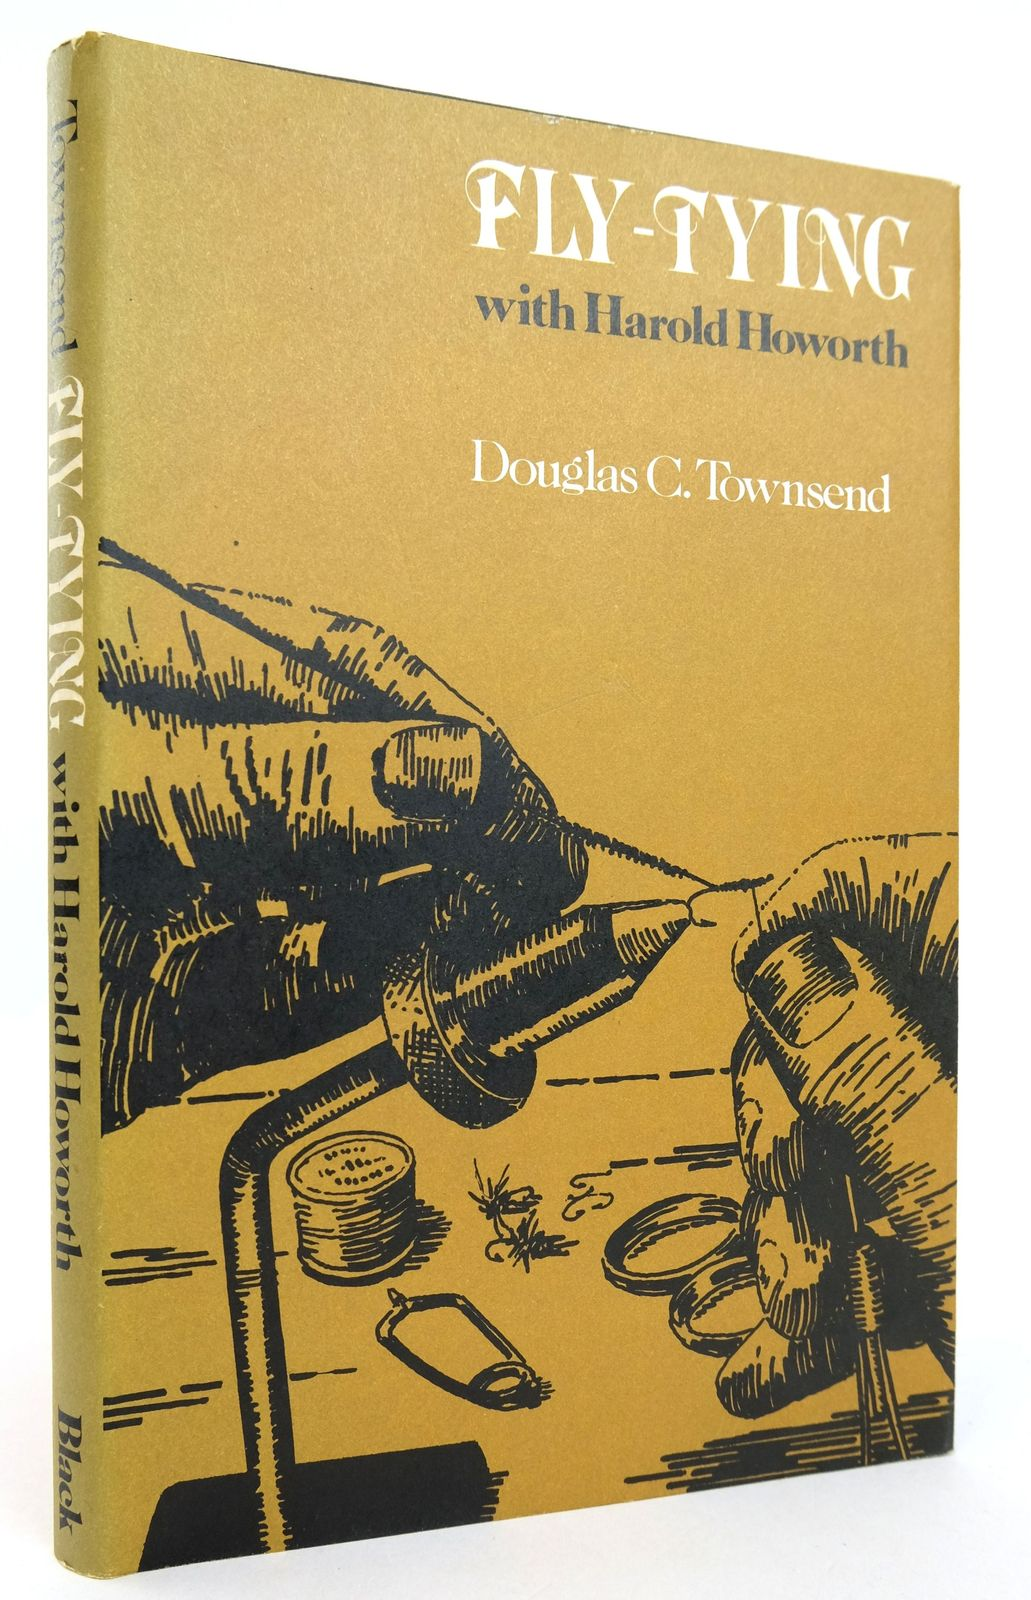 Photo of FLY-TYING WITH HAROLD HOWORTH- Stock Number: 1819197